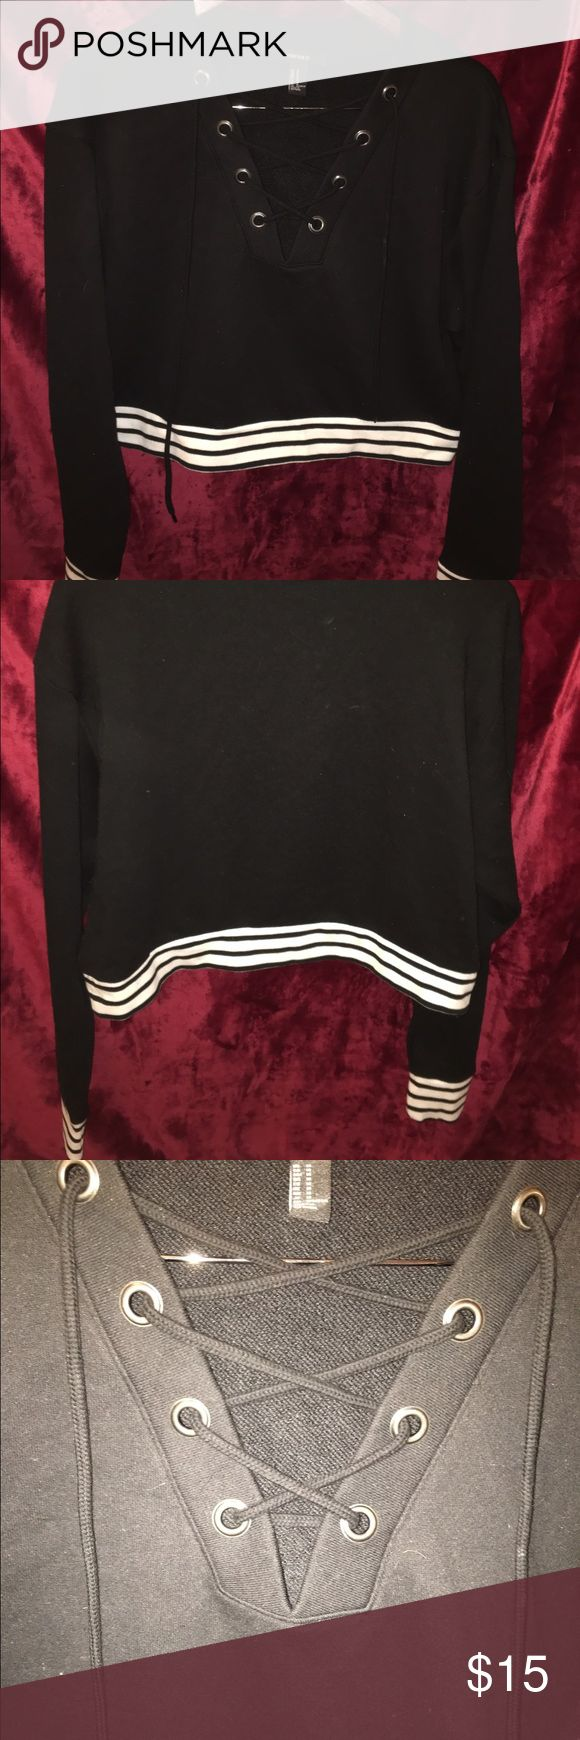 Black laced up crop crewneck crop top sweatshirt Women's size medium. This black crop top crewneck is new without tags! It features a black and white striped sleeve trim and bottom trim, it is cropped, and it has a black lace up laced up front! Don't miss out on this great deal!    Crewneck, crew, hoodie, sweatshirt, Kylie Jenner, Kylie, hooded, black, white, lace up, laced up, tied up, ties, tie up, Tops Sweatshirts & Hoodies